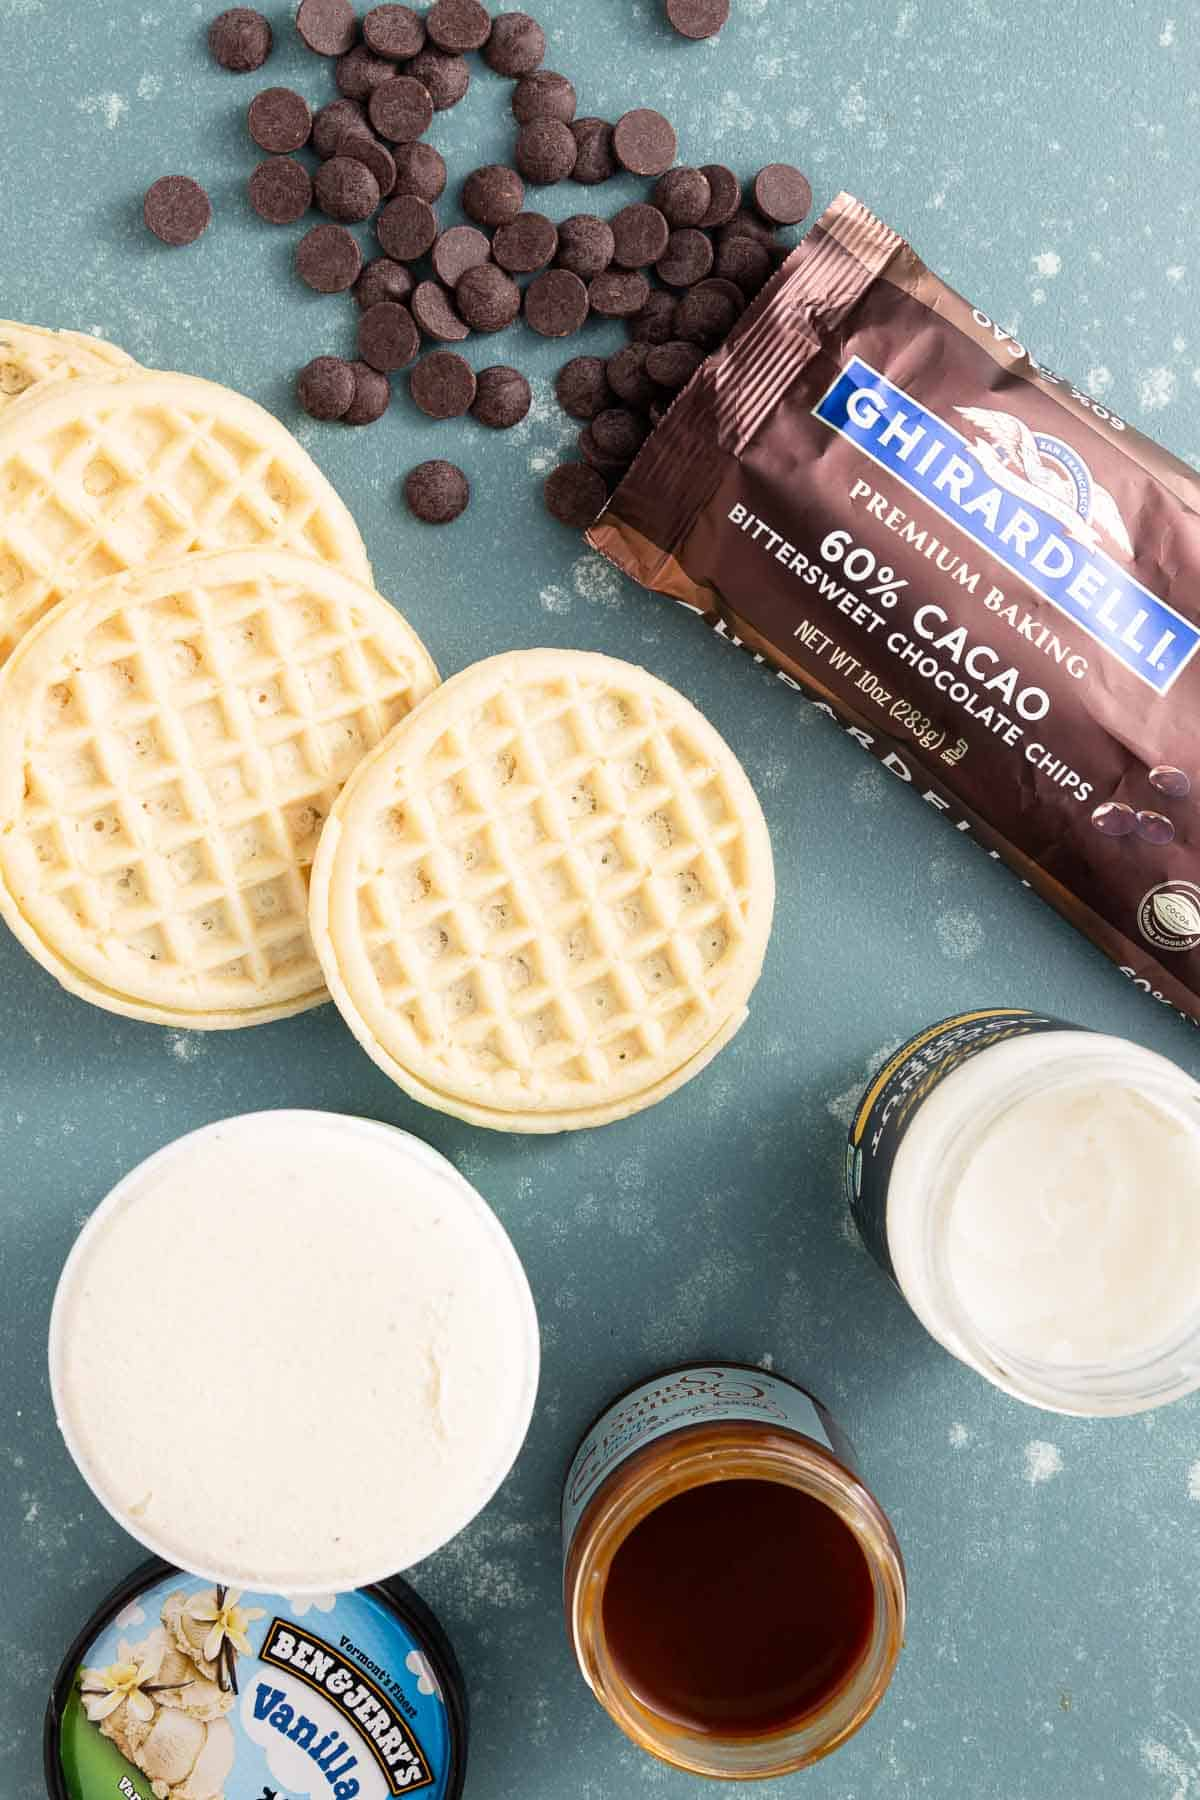 waffles, ice cream, coconut oil in a jar, and a bag of chocolate chips